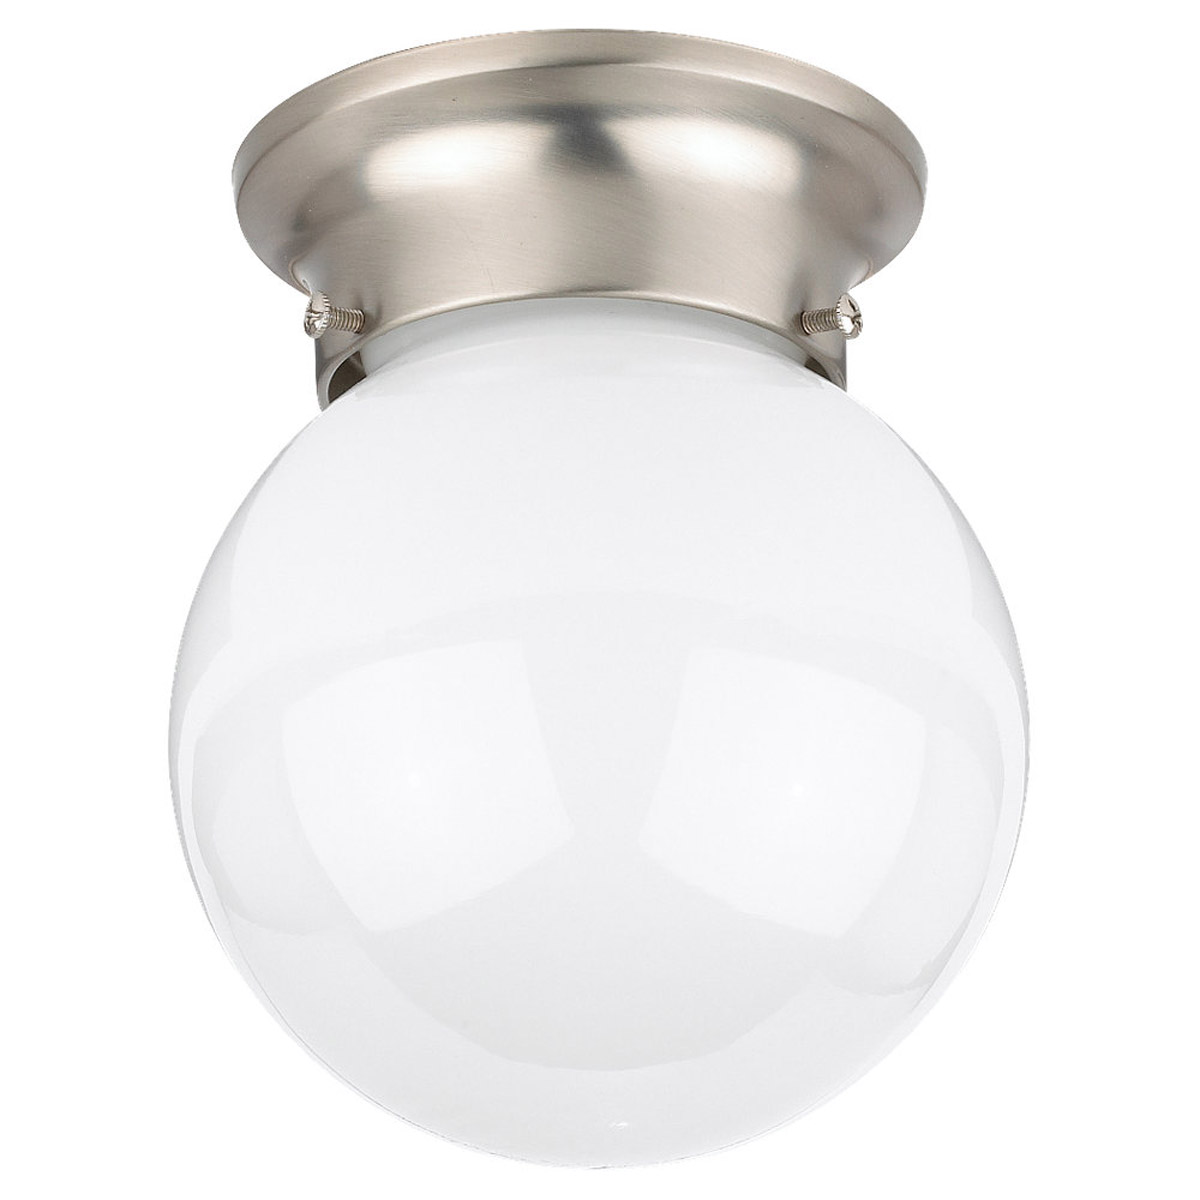 Sea Gull 5366-962 Tomkin 1 Light 6 inch Brushed Nickel Flush Mount Ceiling Light photo